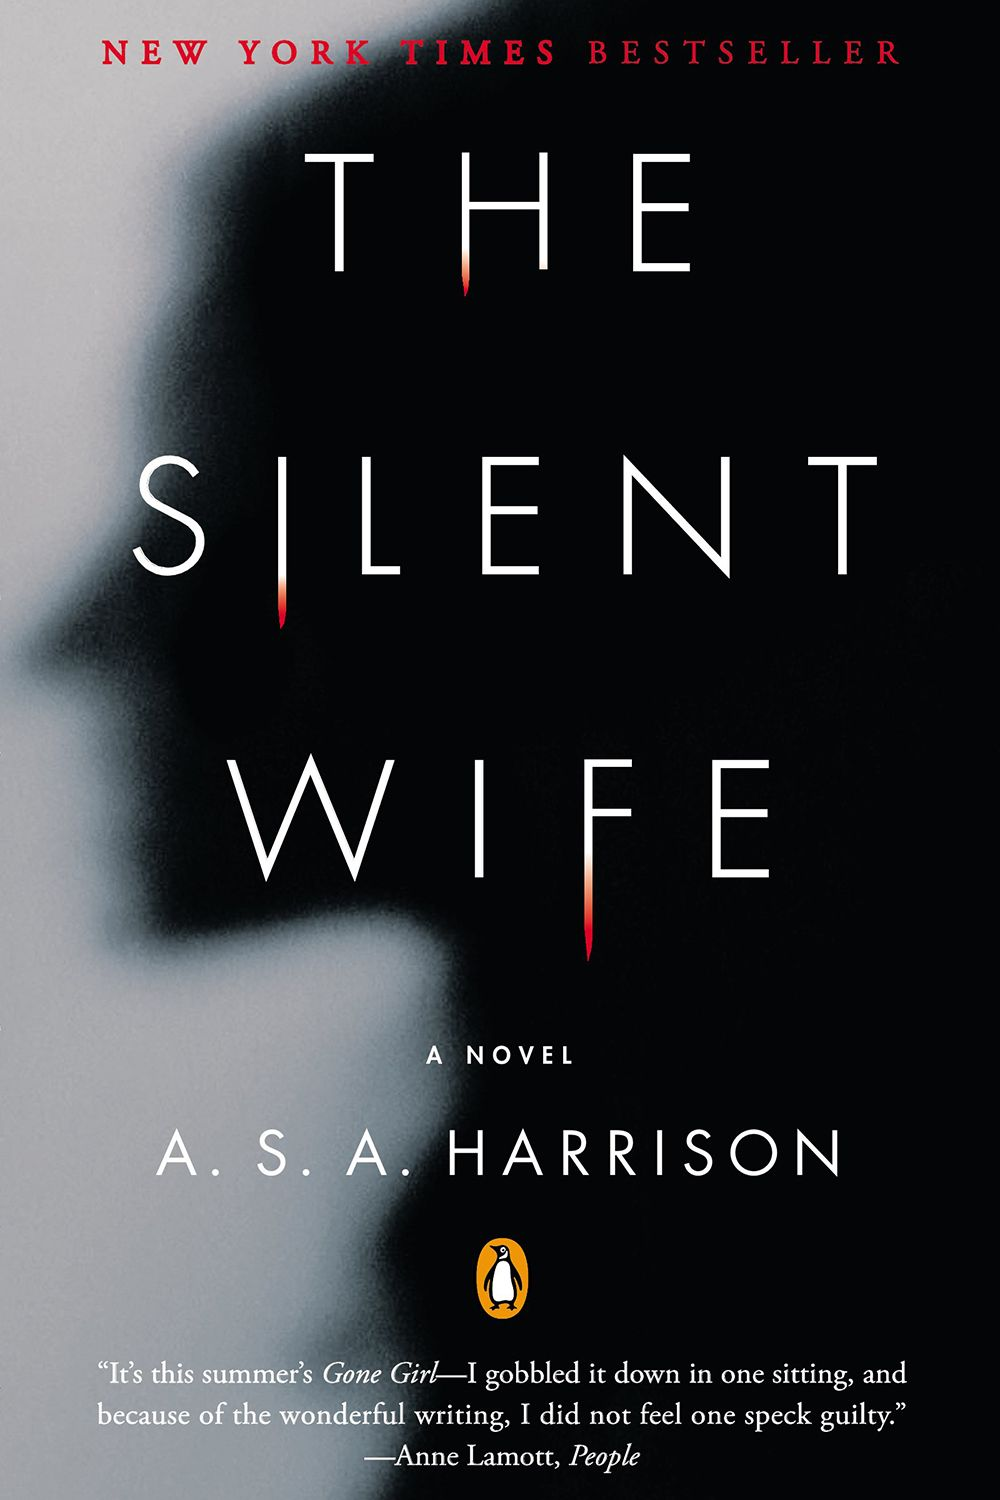 <p>The rapid story of a marriage hurtling toward<br><br>